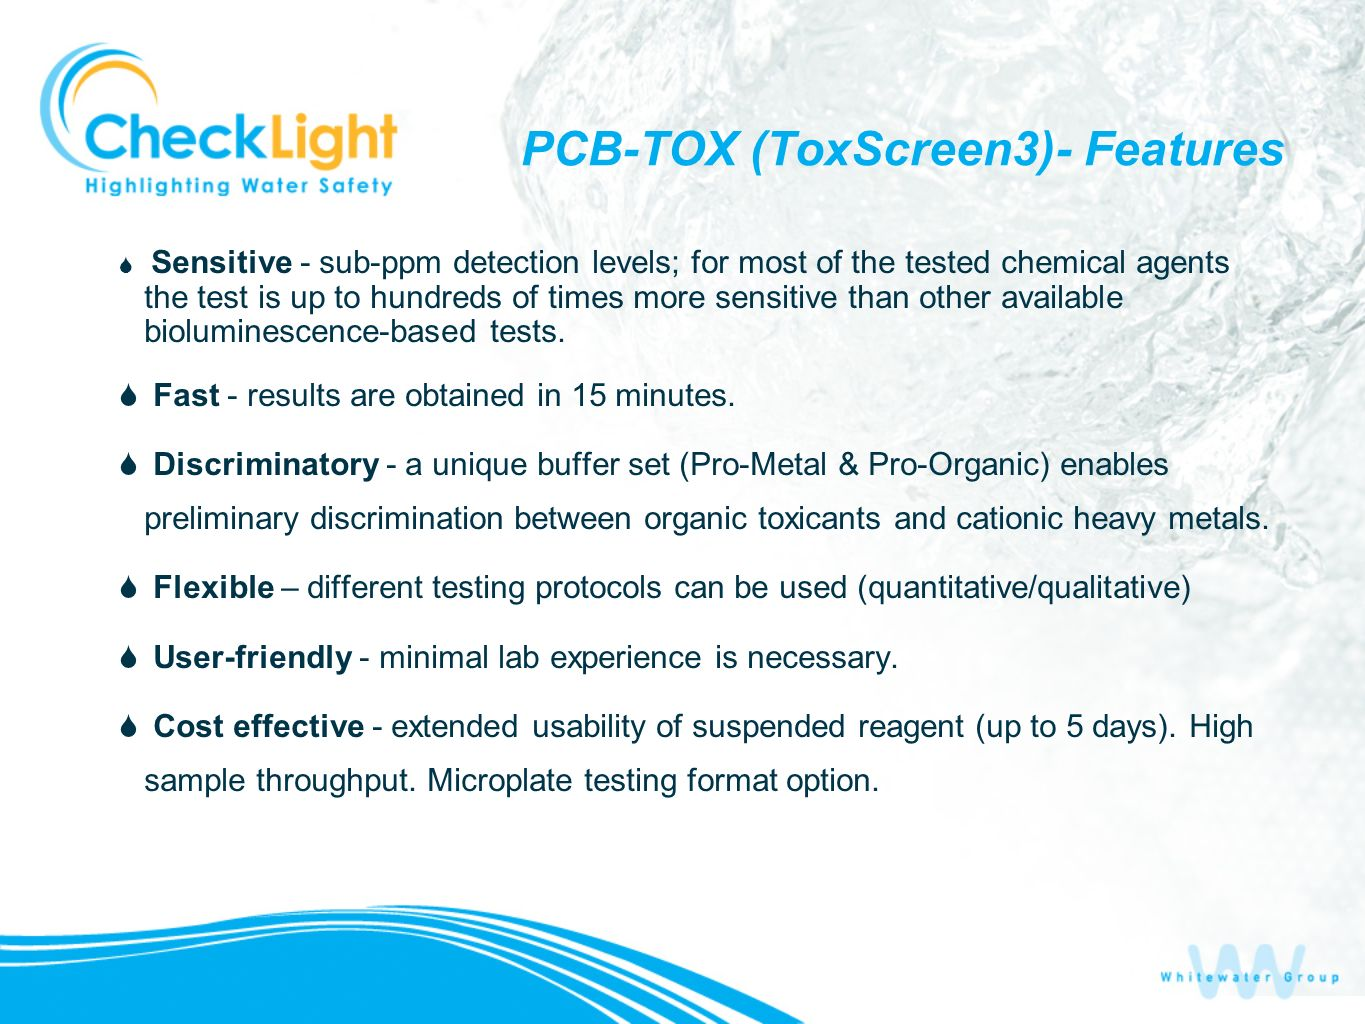 PCB-TOX (ToxScreen3)- Features